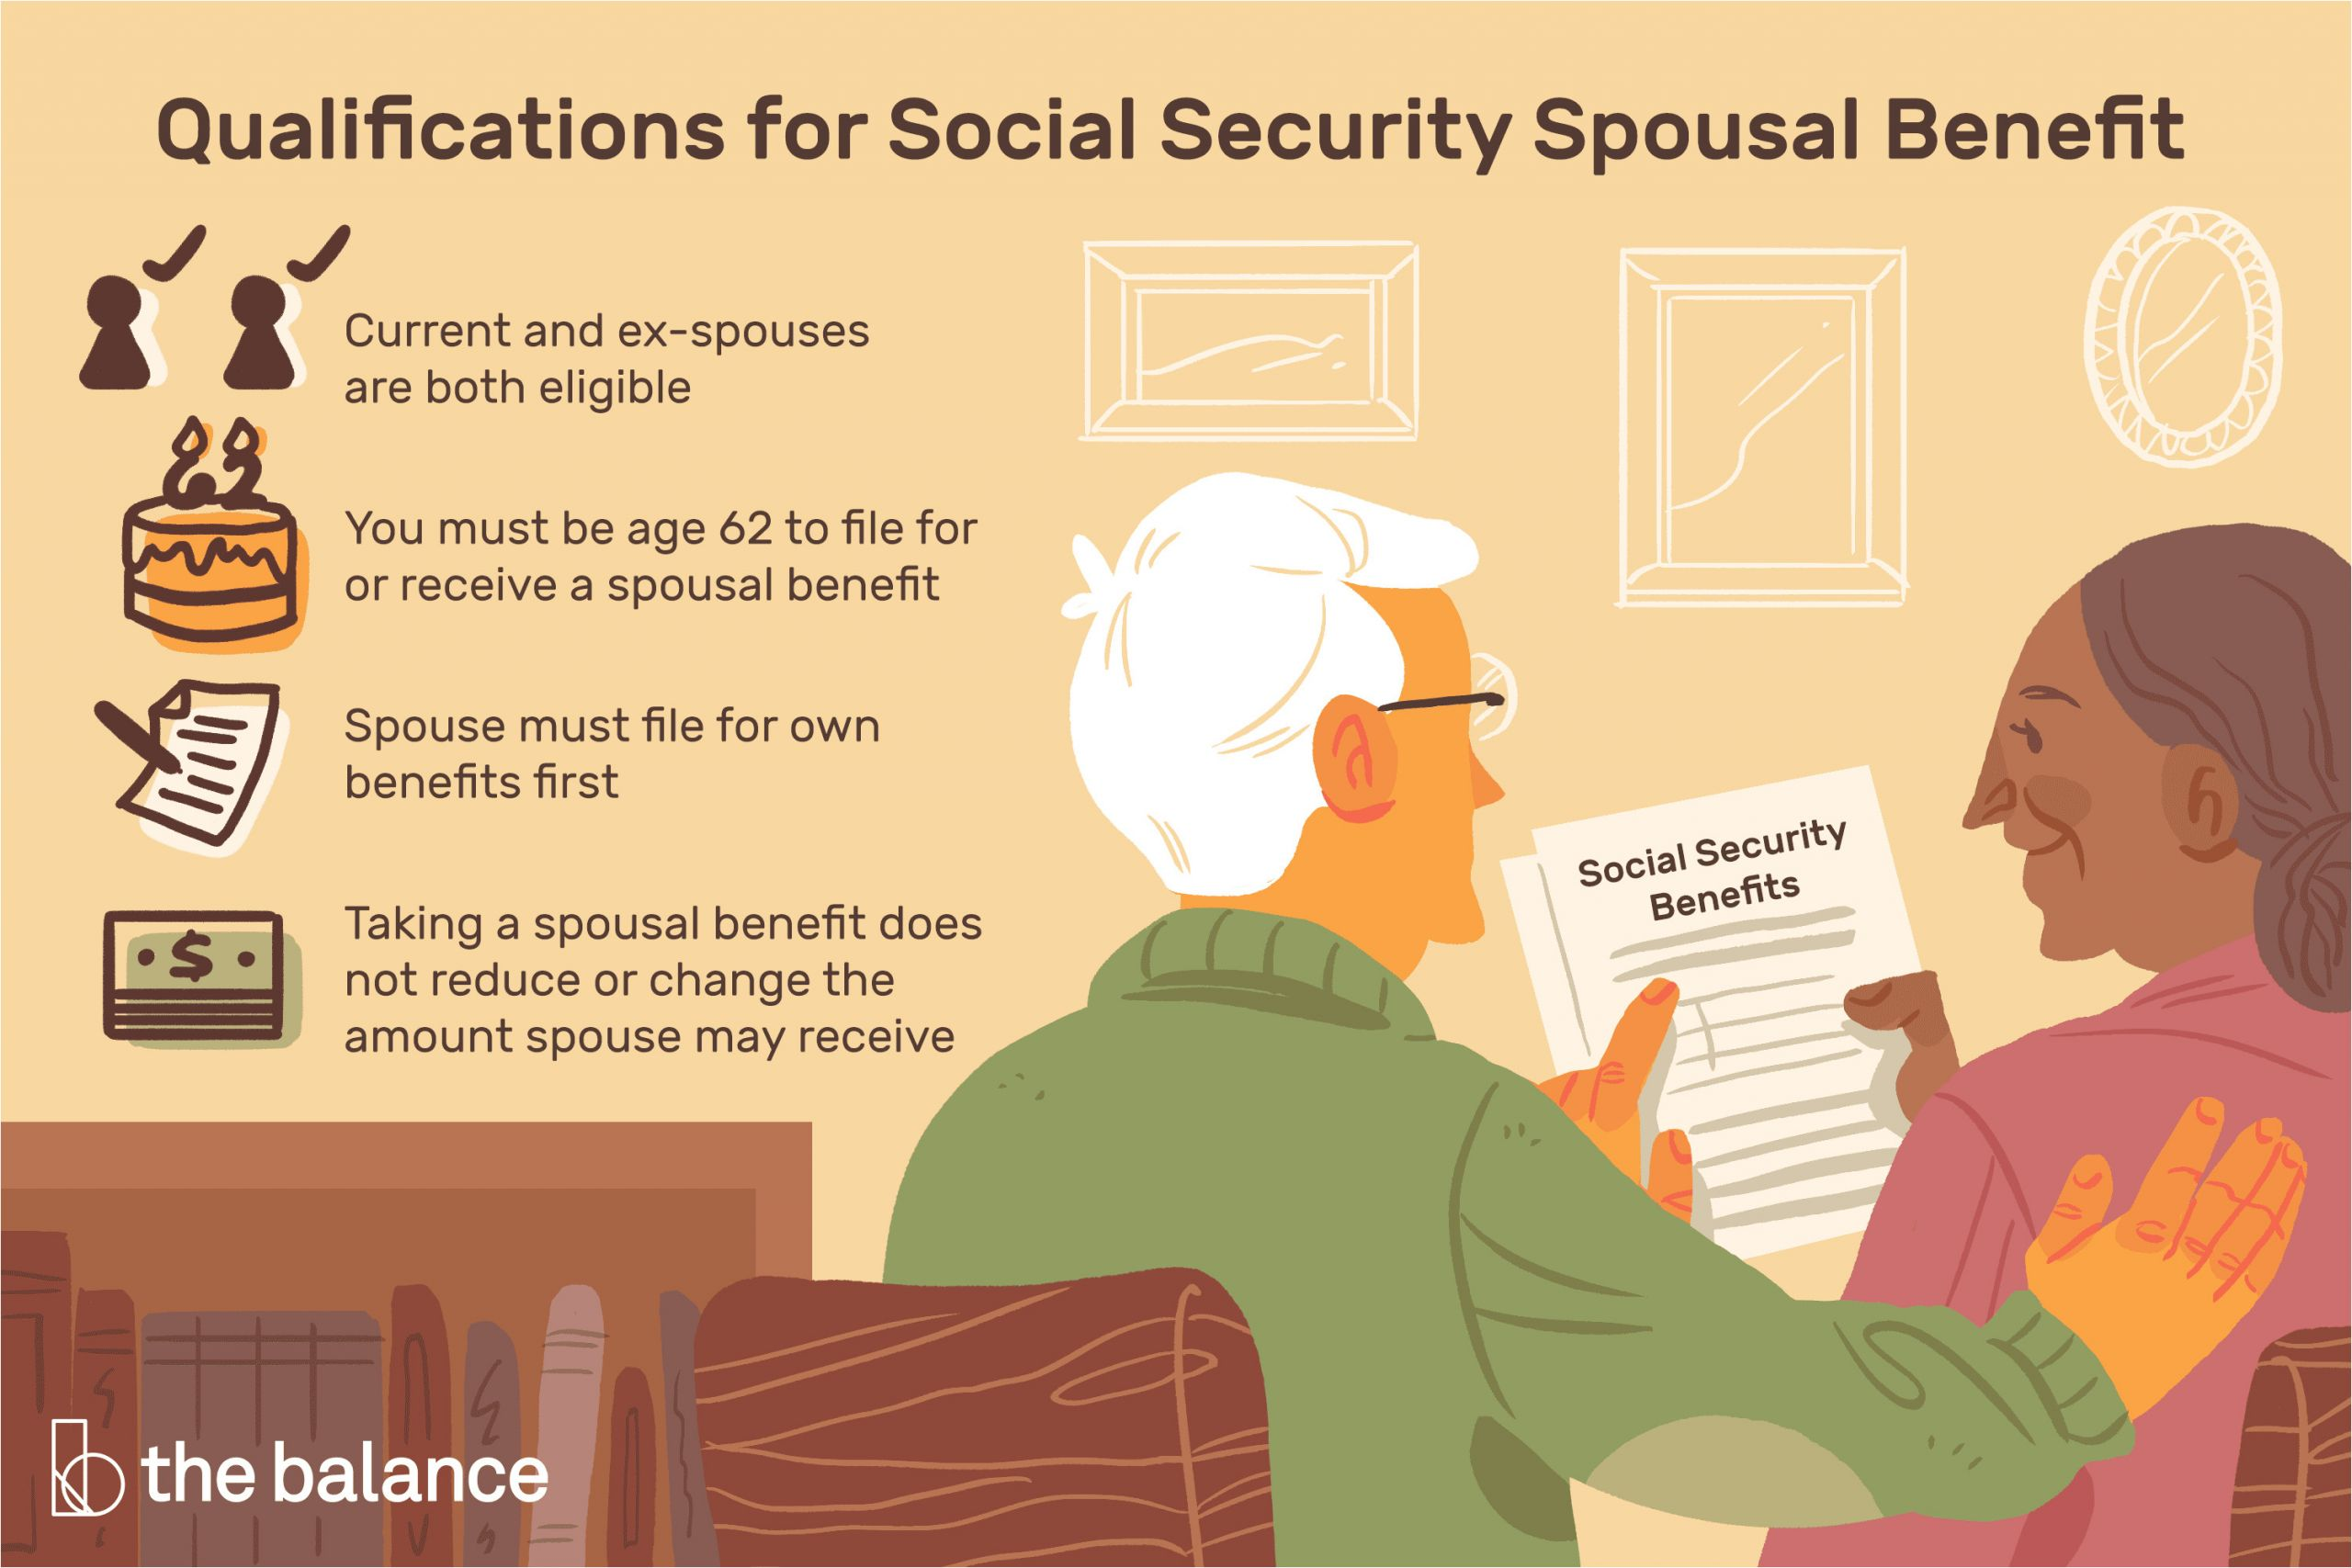 how the the social security spouse benefit works 2388924 final 454c6b7b12a44930bd8ab9c5d81a6102 png